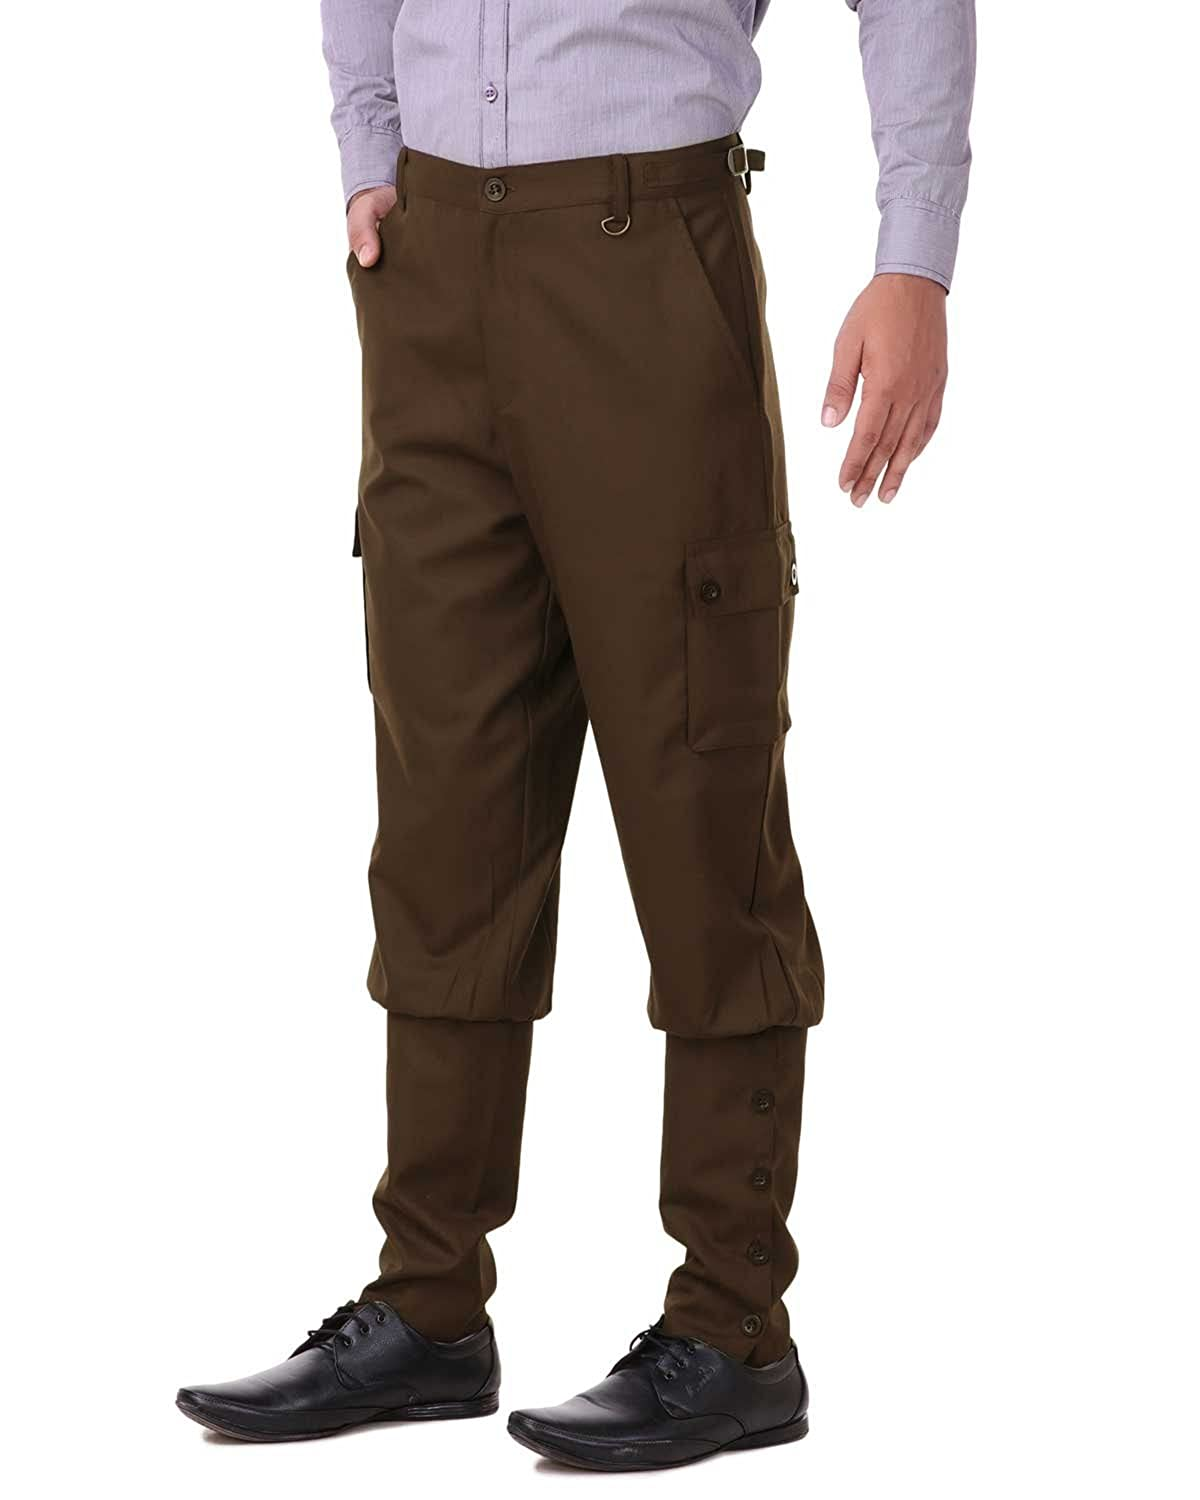 Men's Steampink Pants & Trousers Steampunk Victorian Cosplay Costume Mens Airship Pants Trousers ThePirateDressing $59.09 AT vintagedancer.com